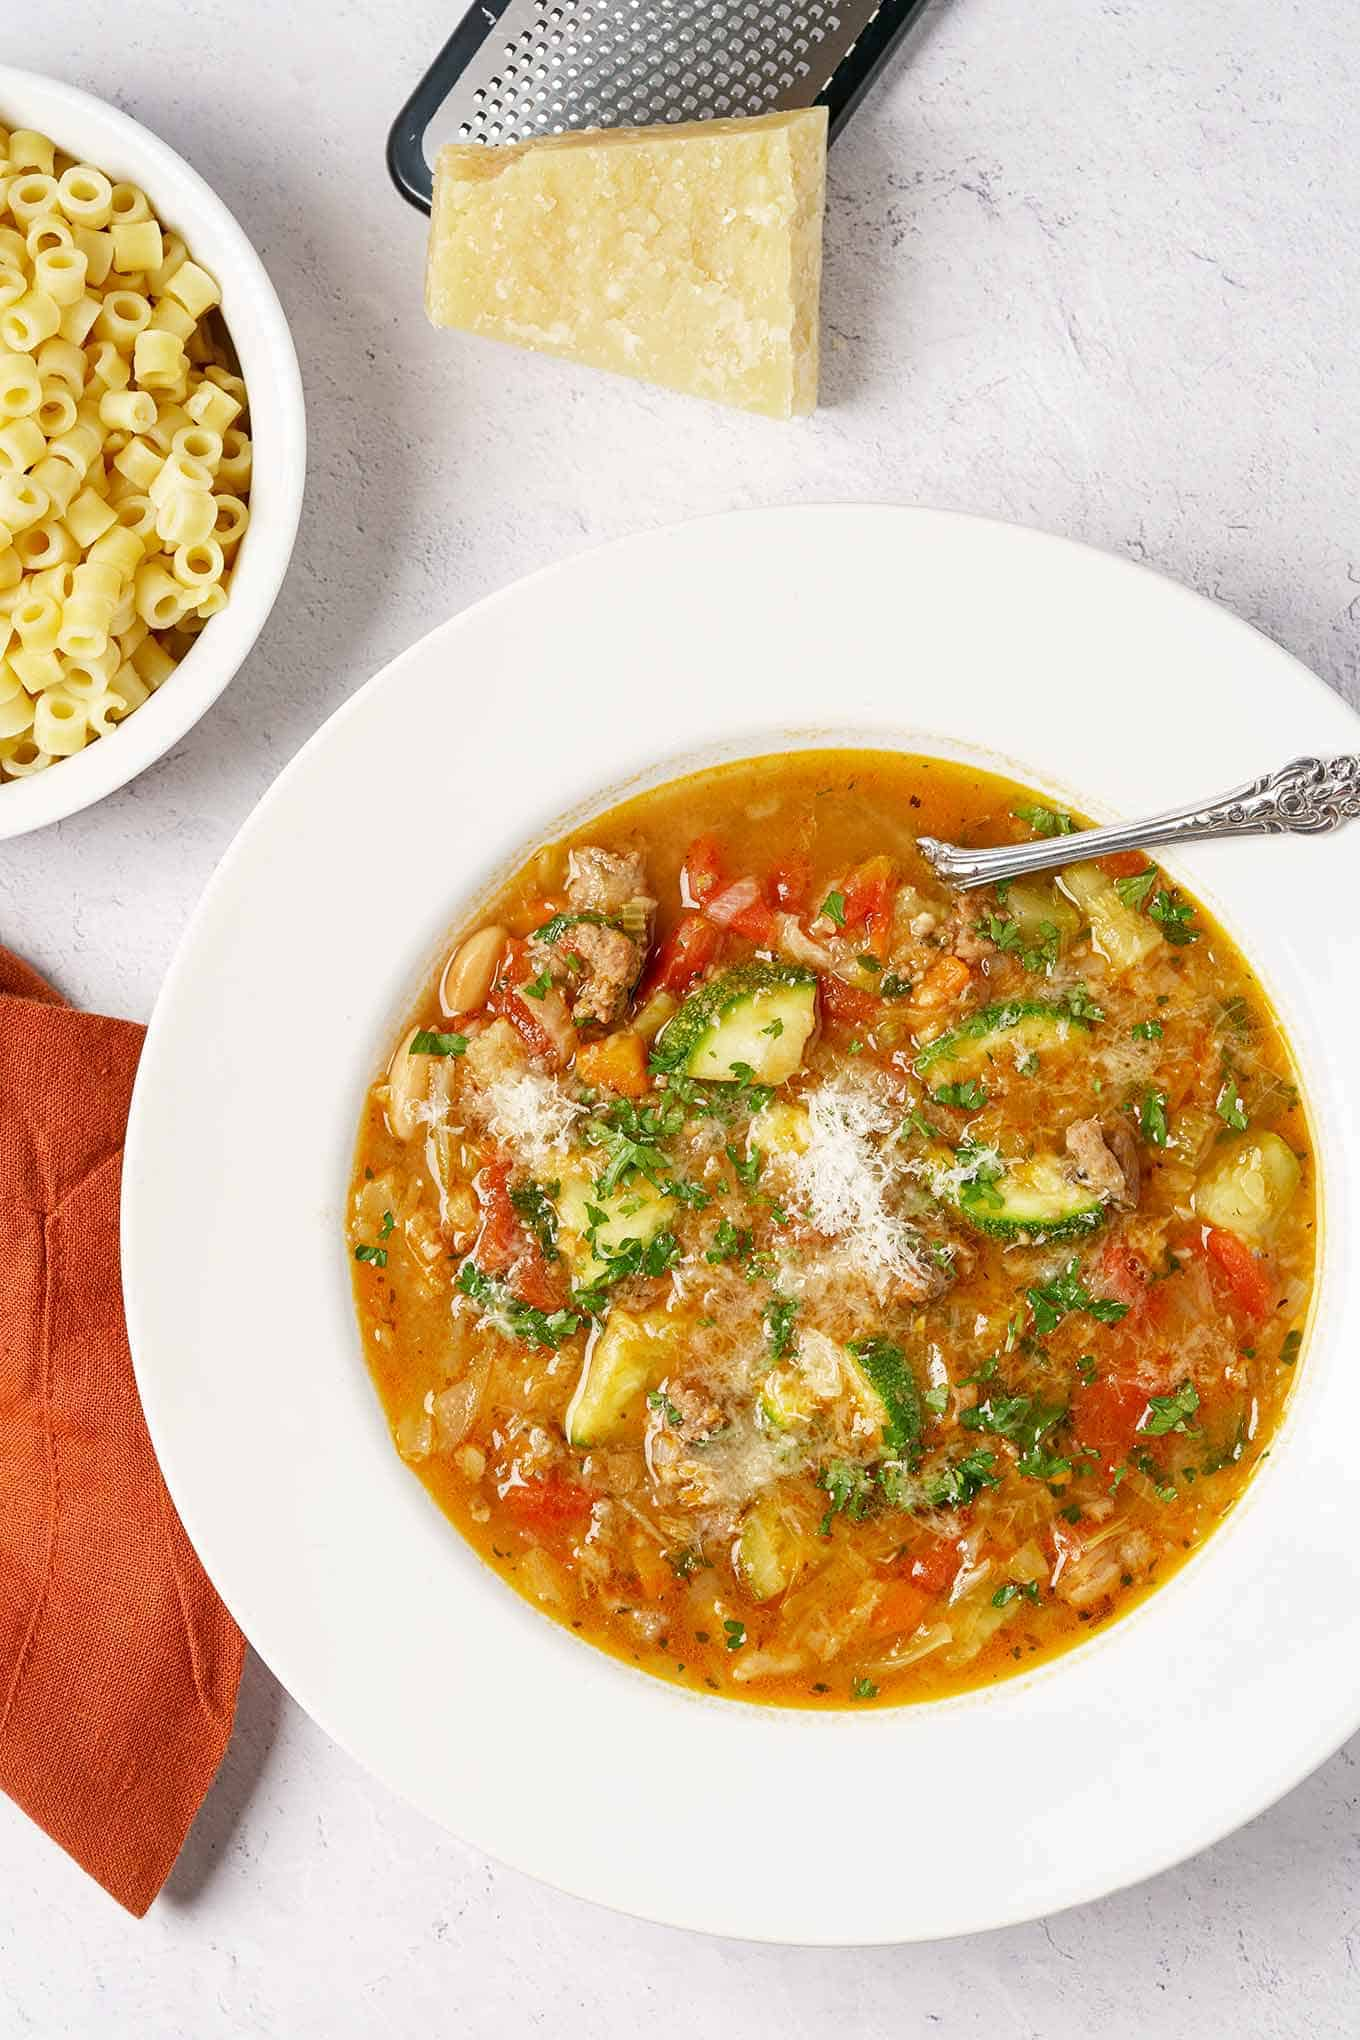 Bowl of homemade minestrone soup with ditalini and Parmesan cheese wedge on the side.